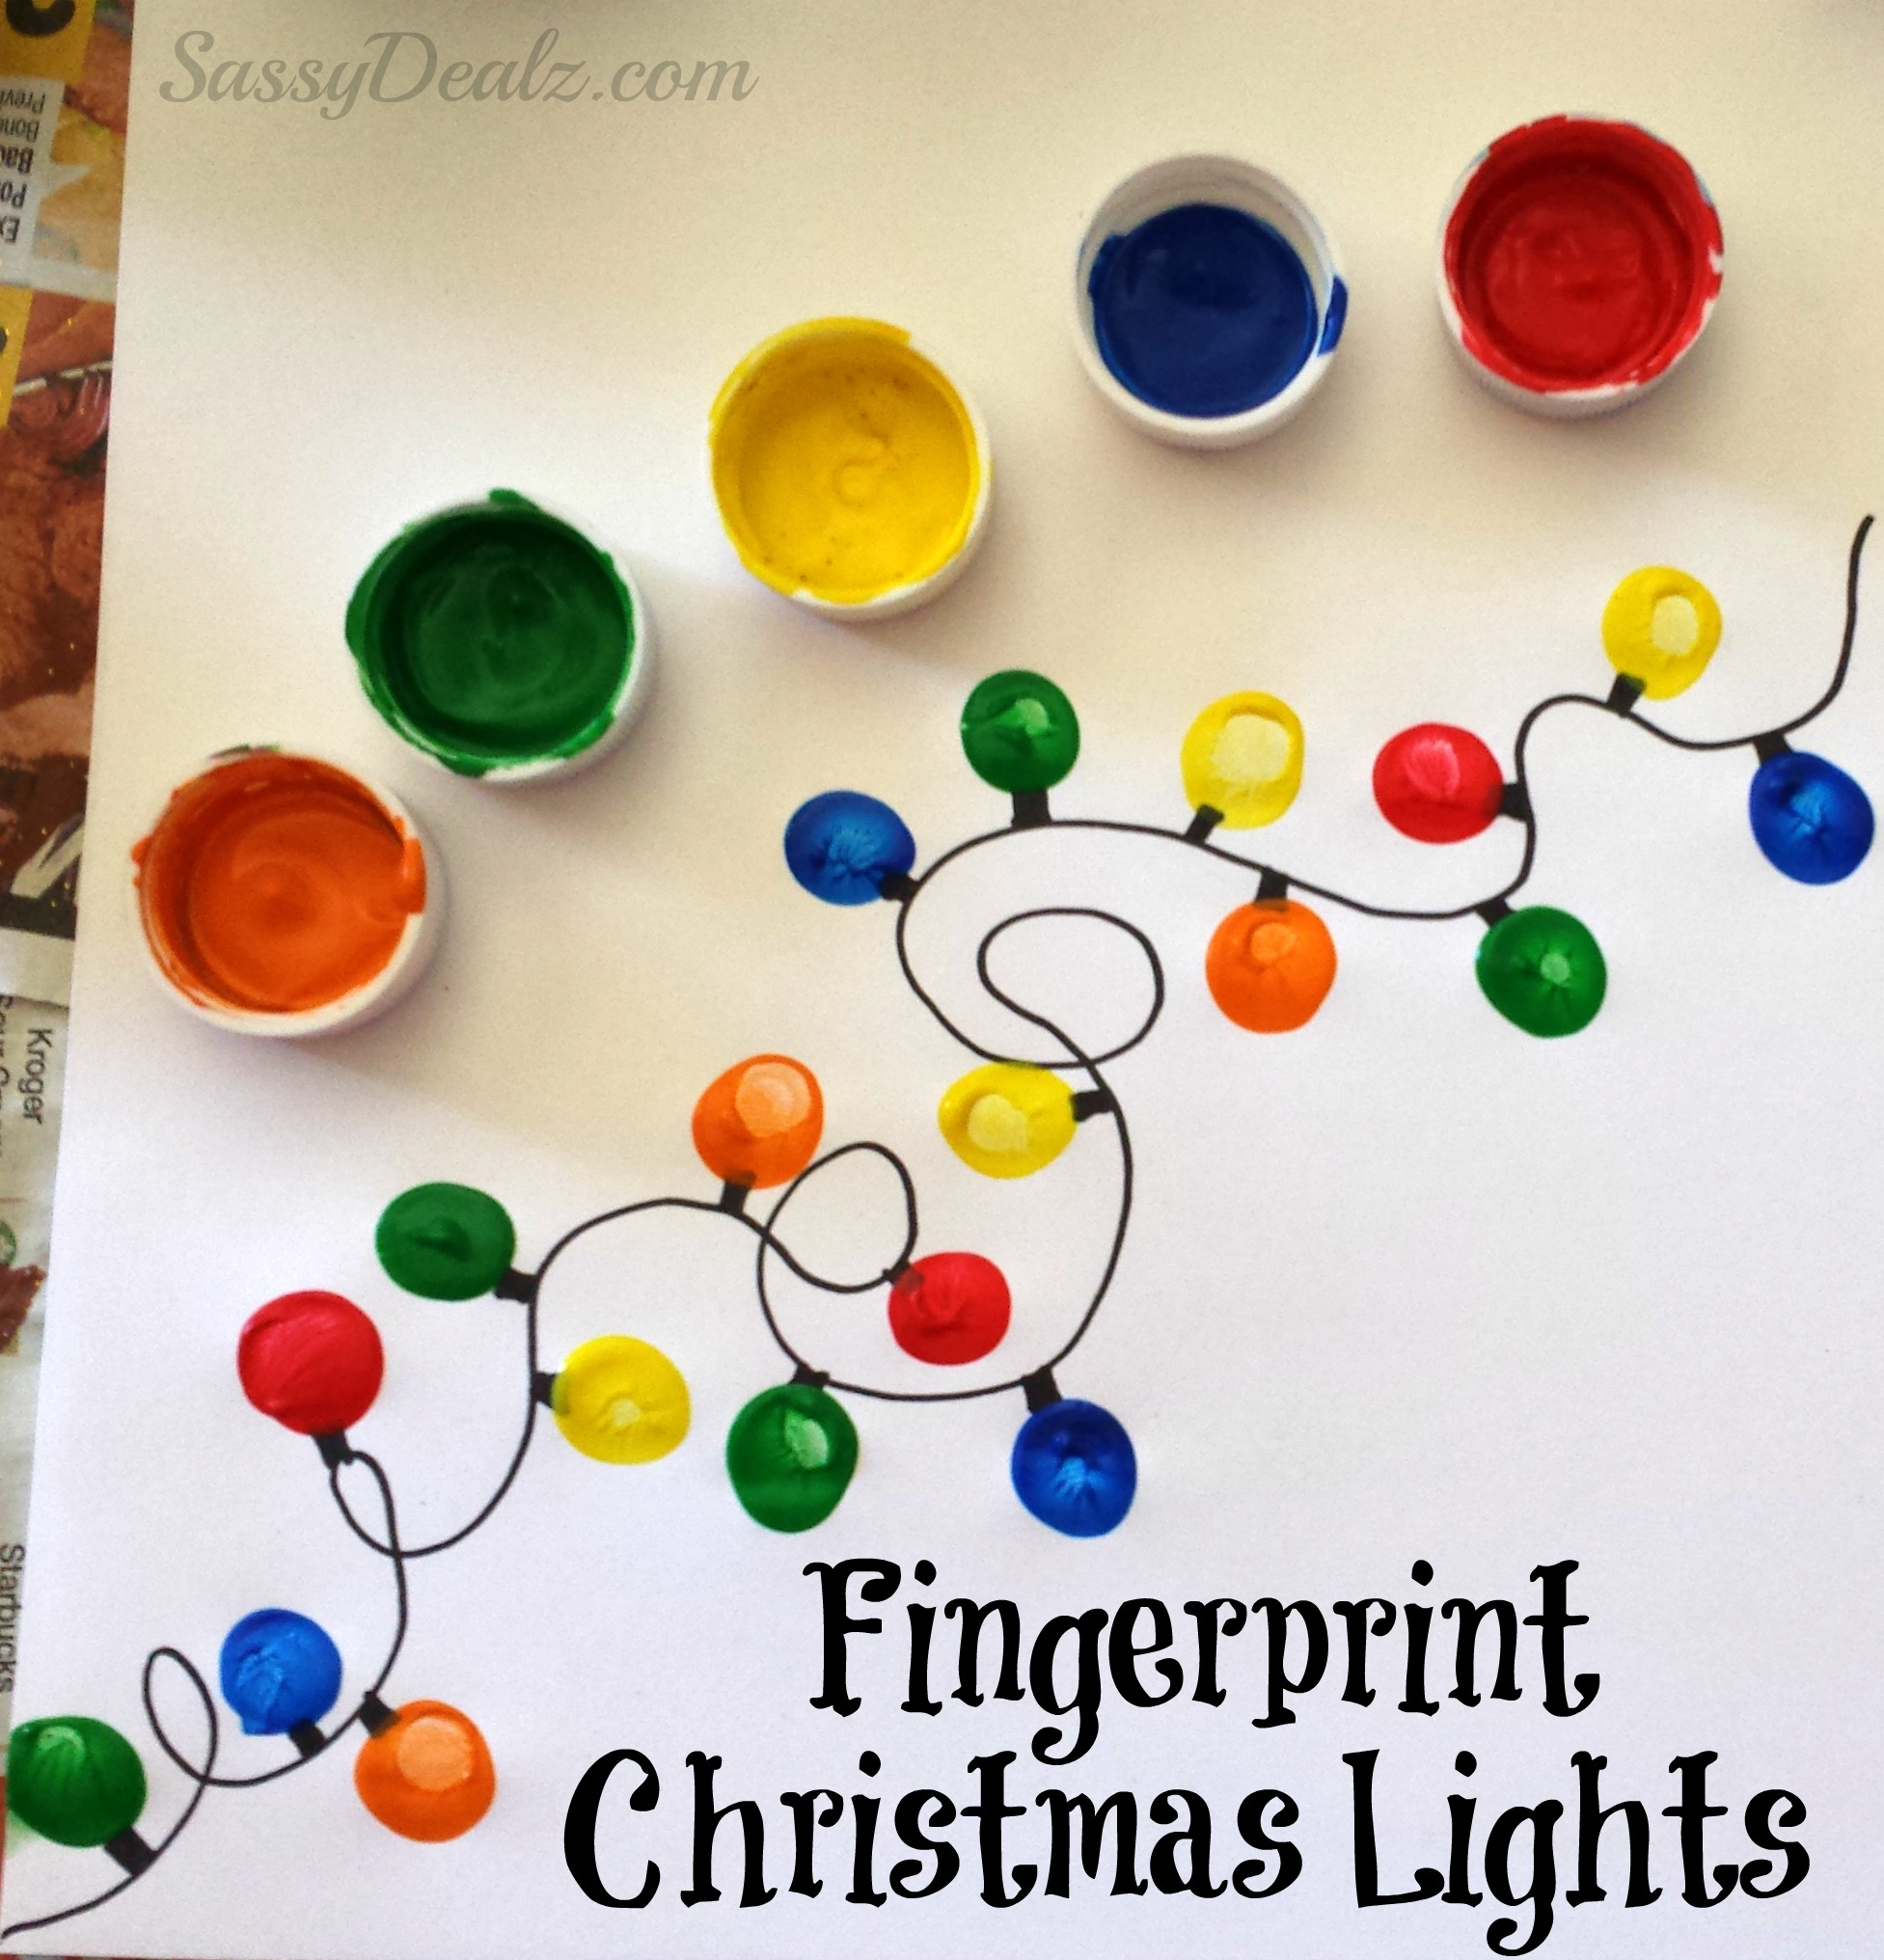 DIY Fingerprint Christmas Tree Light Craft For Kids Just Have The Child Dip Their Pointer Finger In Different Colored Paints Super Cute